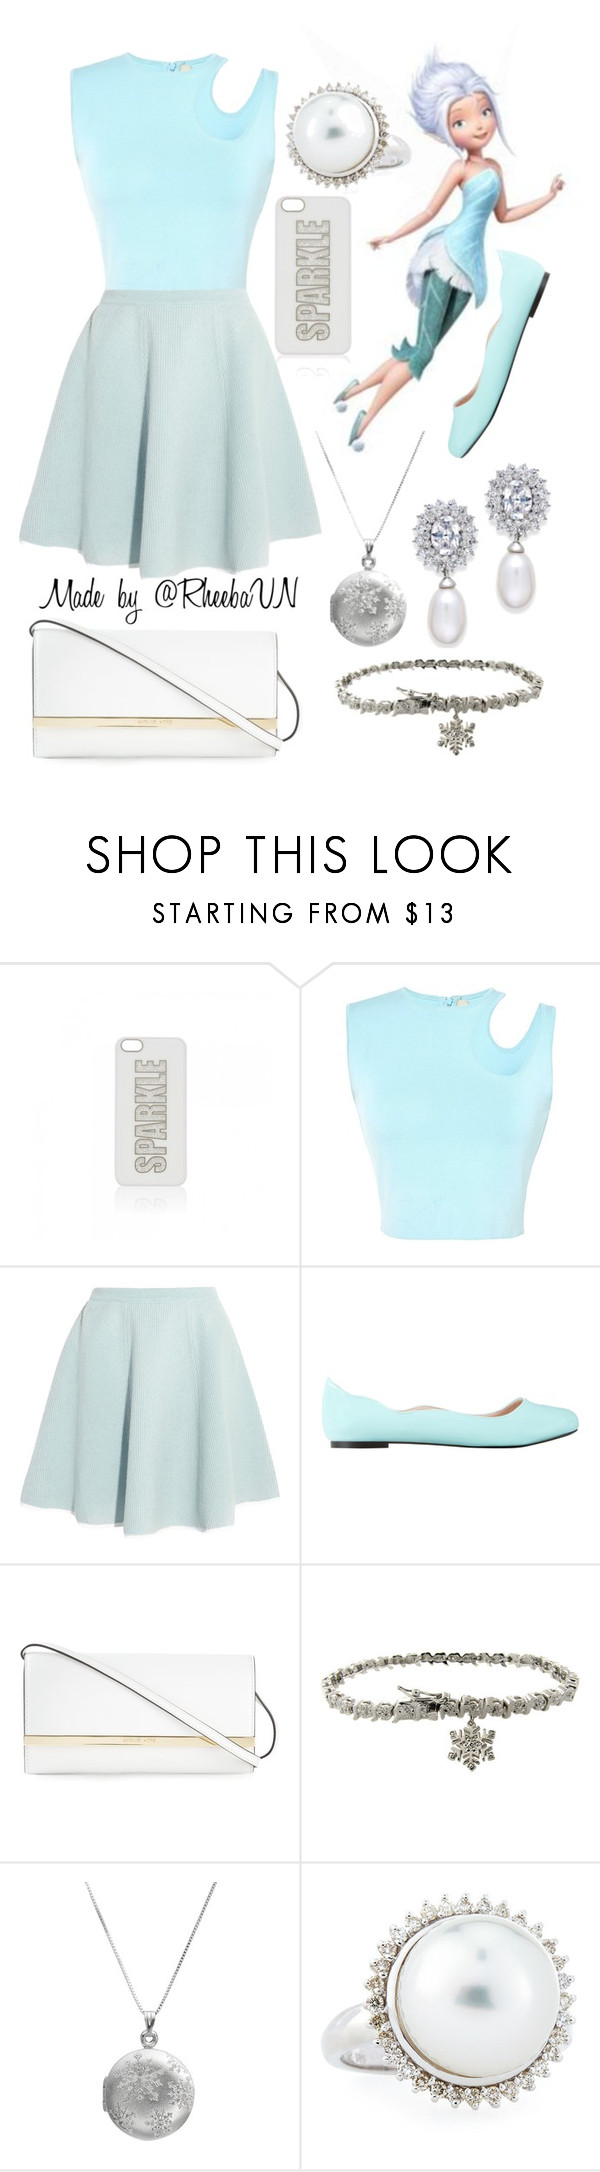 """""""Periwinkle"""" by rheebavn ❤ liked on Polyvore featuring Forever New, Thierry Mugler, Sonia by Sonia Rykiel, ZALORA, MICHAEL Michael Kors, Finesque, Belpearl and Arabella"""